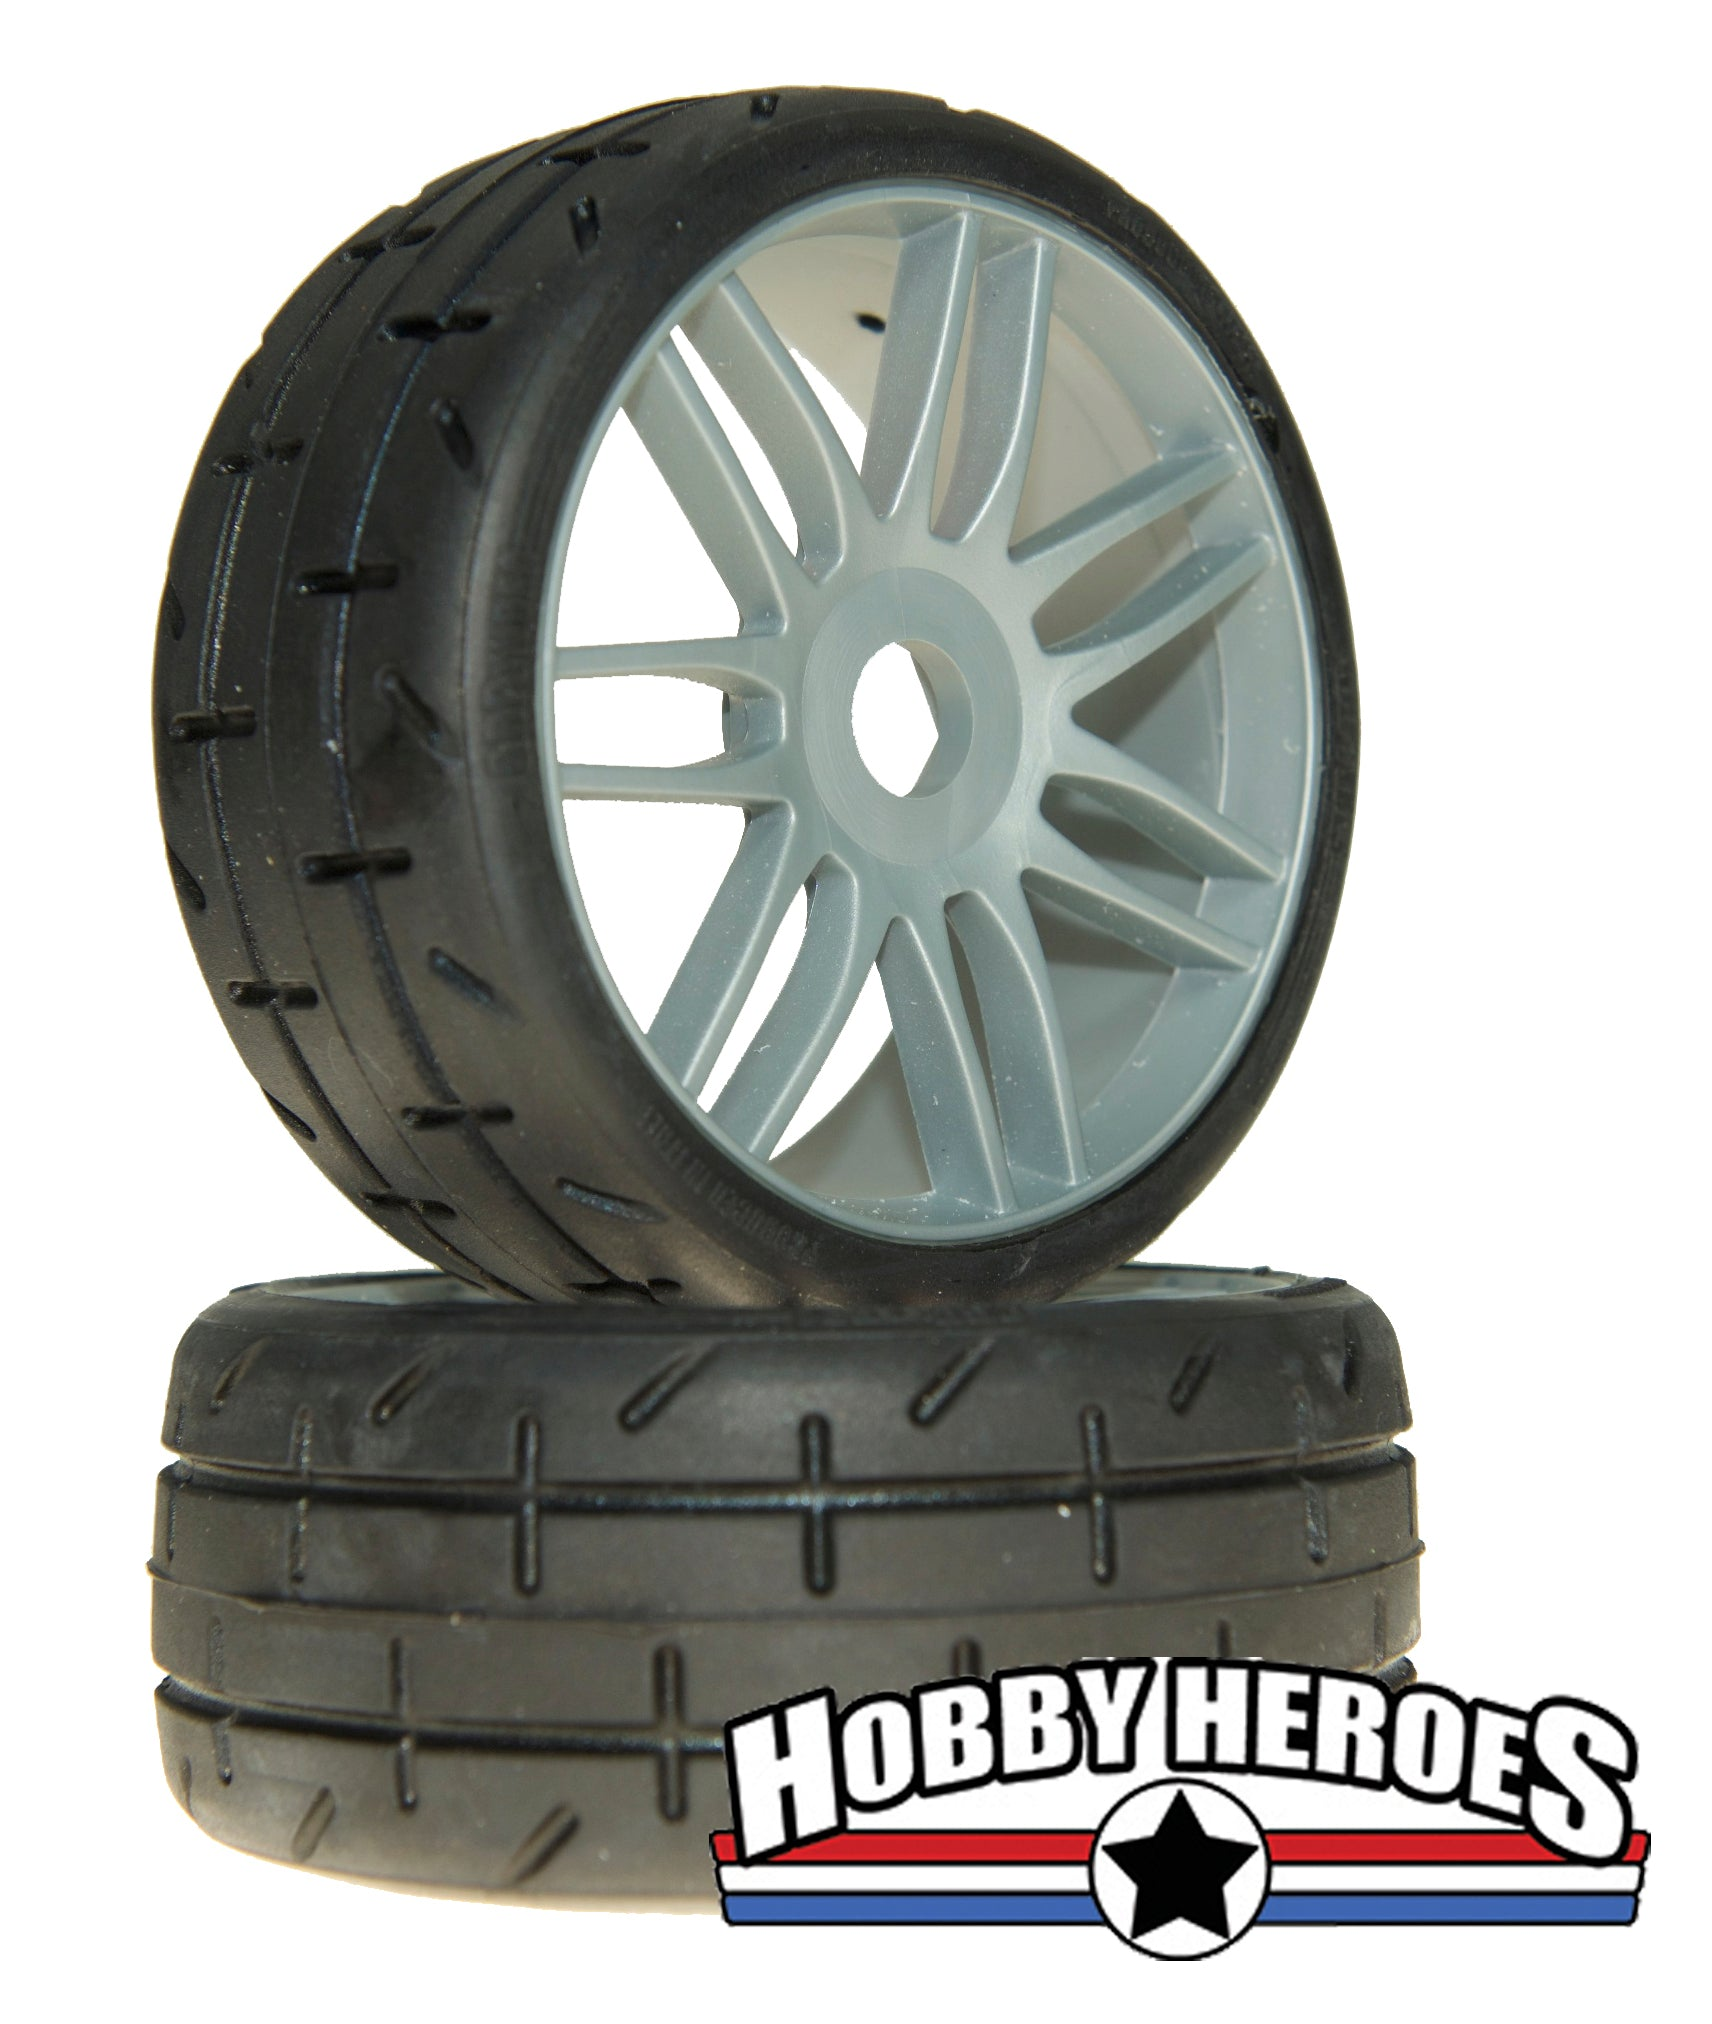 GRP Tyres 1:8 GT Treaded S4 Soft Medium Silver Spoked Belted On-Road Rubber Tires GRPGTK01-S4